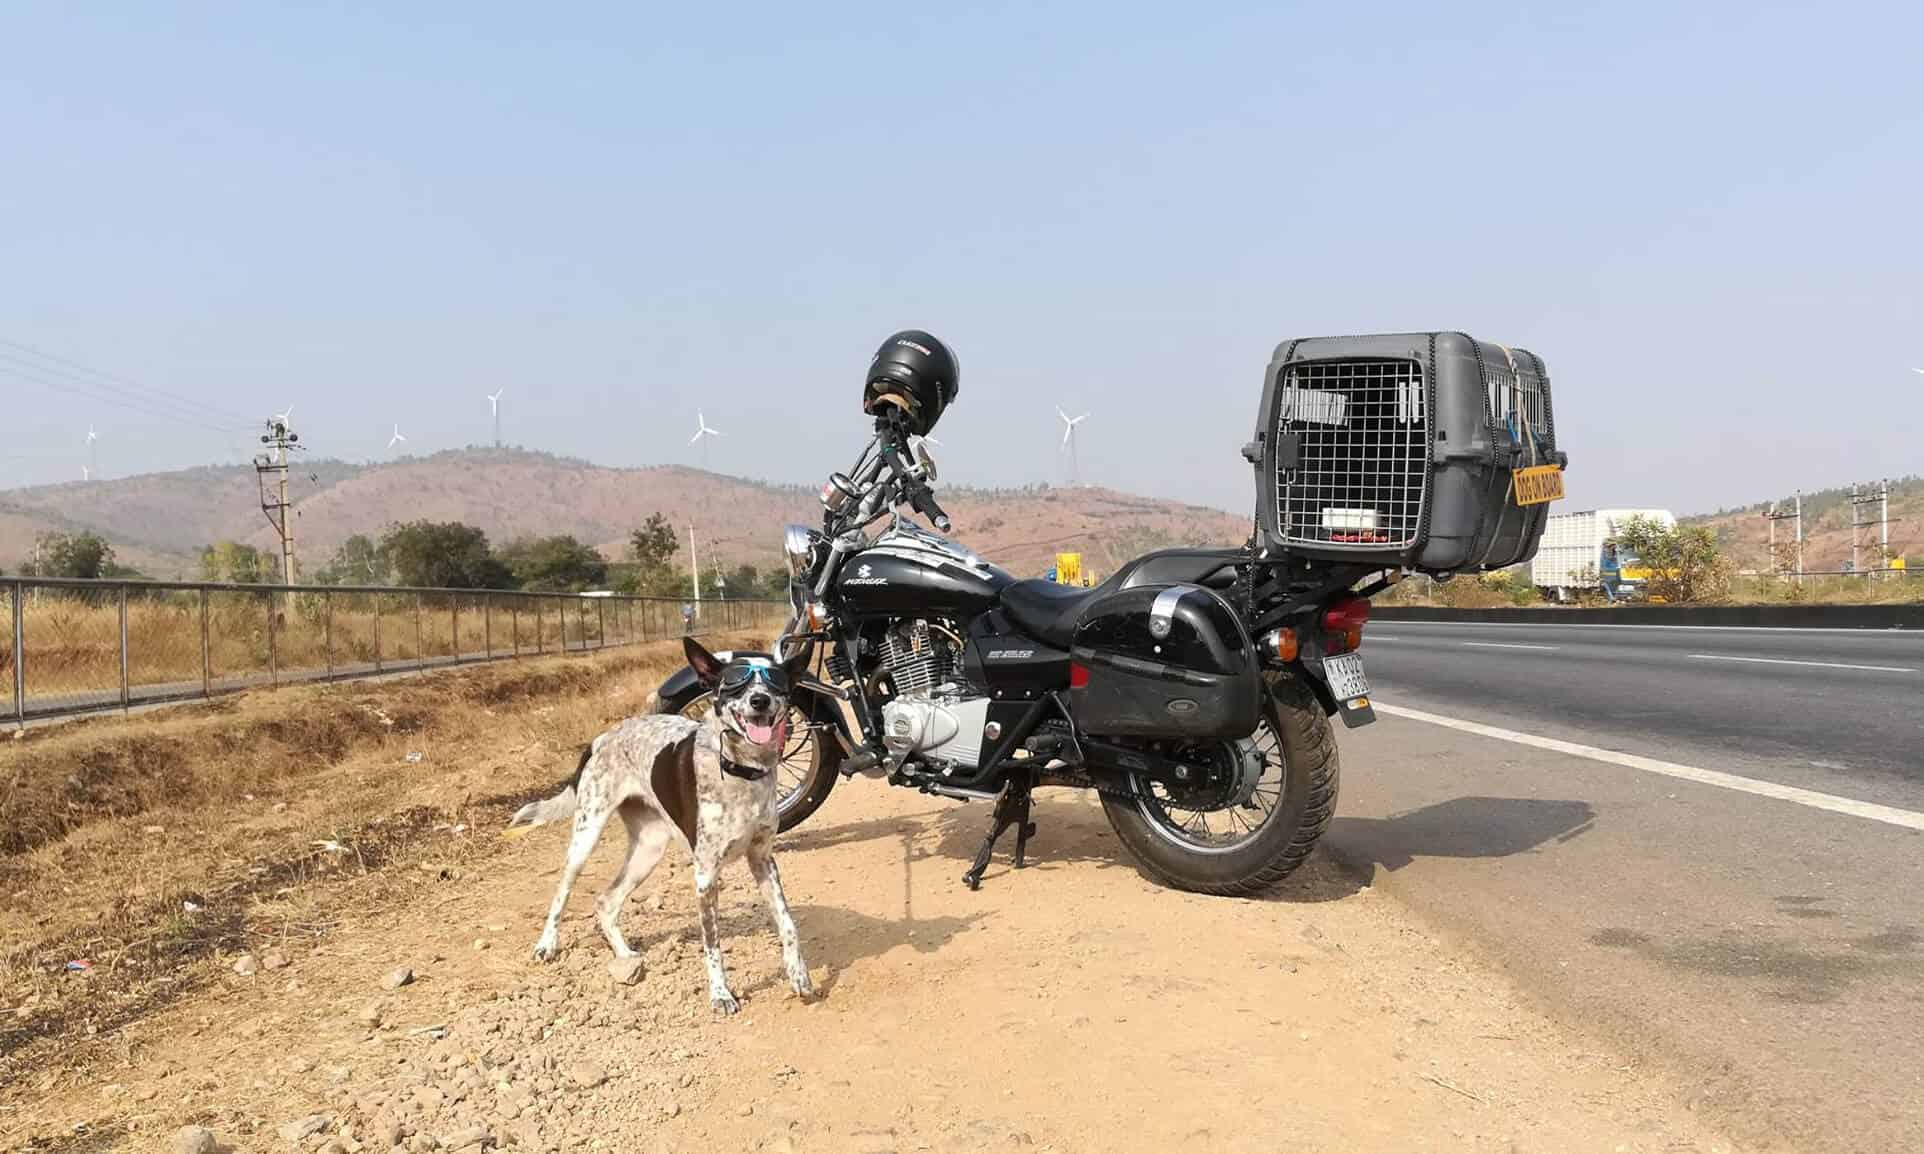 A dog with doggles stands in front of a motorcycle on a street in India.